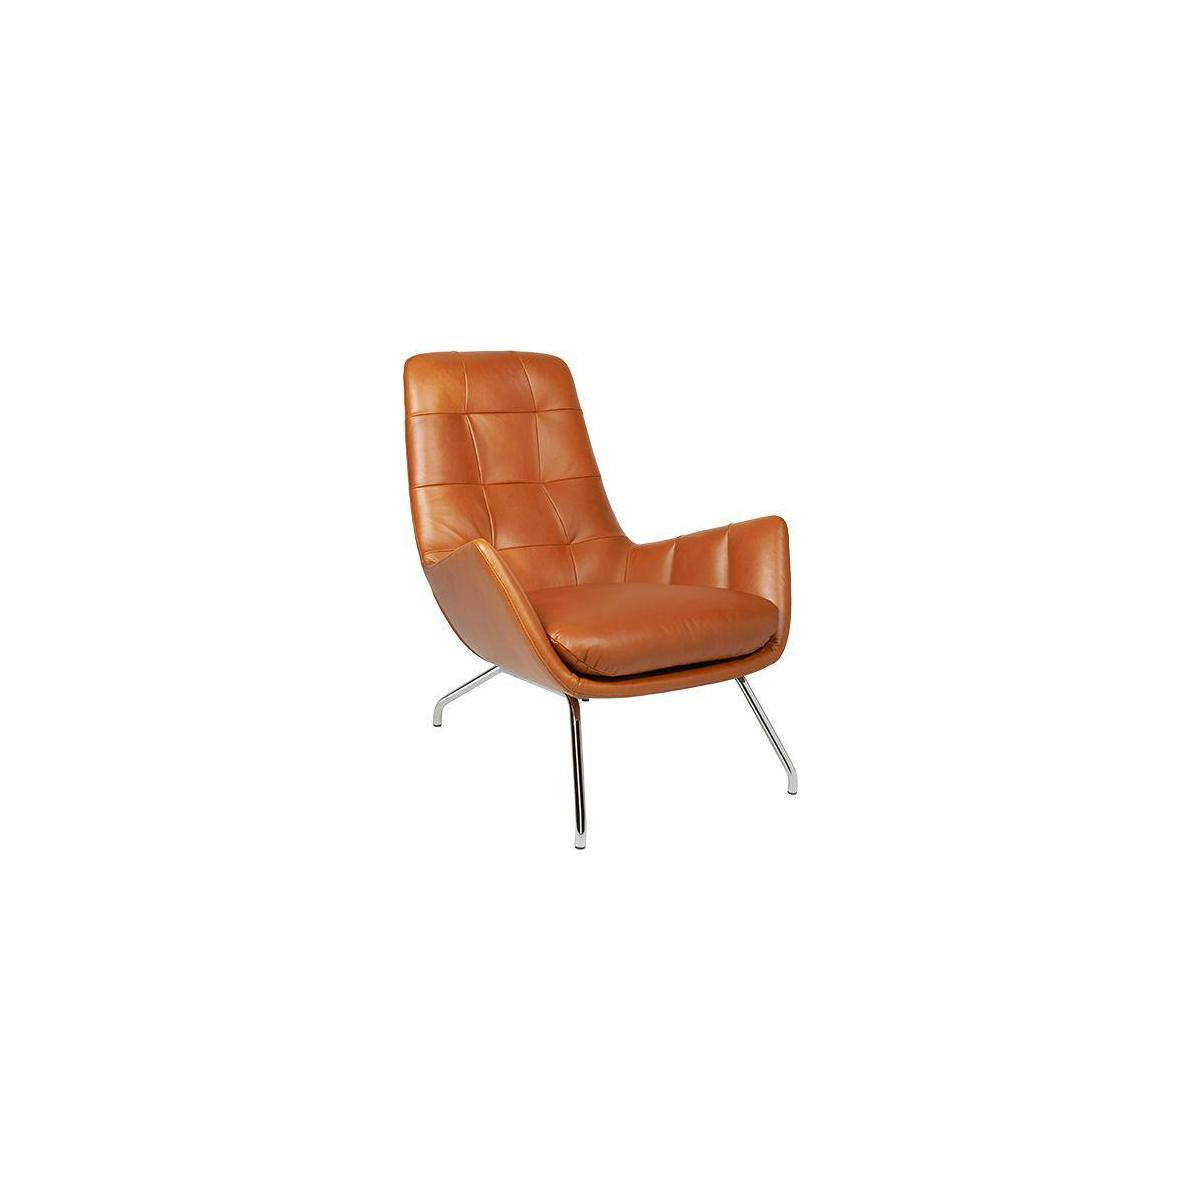 Armchair in Vintage aniline leather, old Chestnut with chromed metal legs n°1